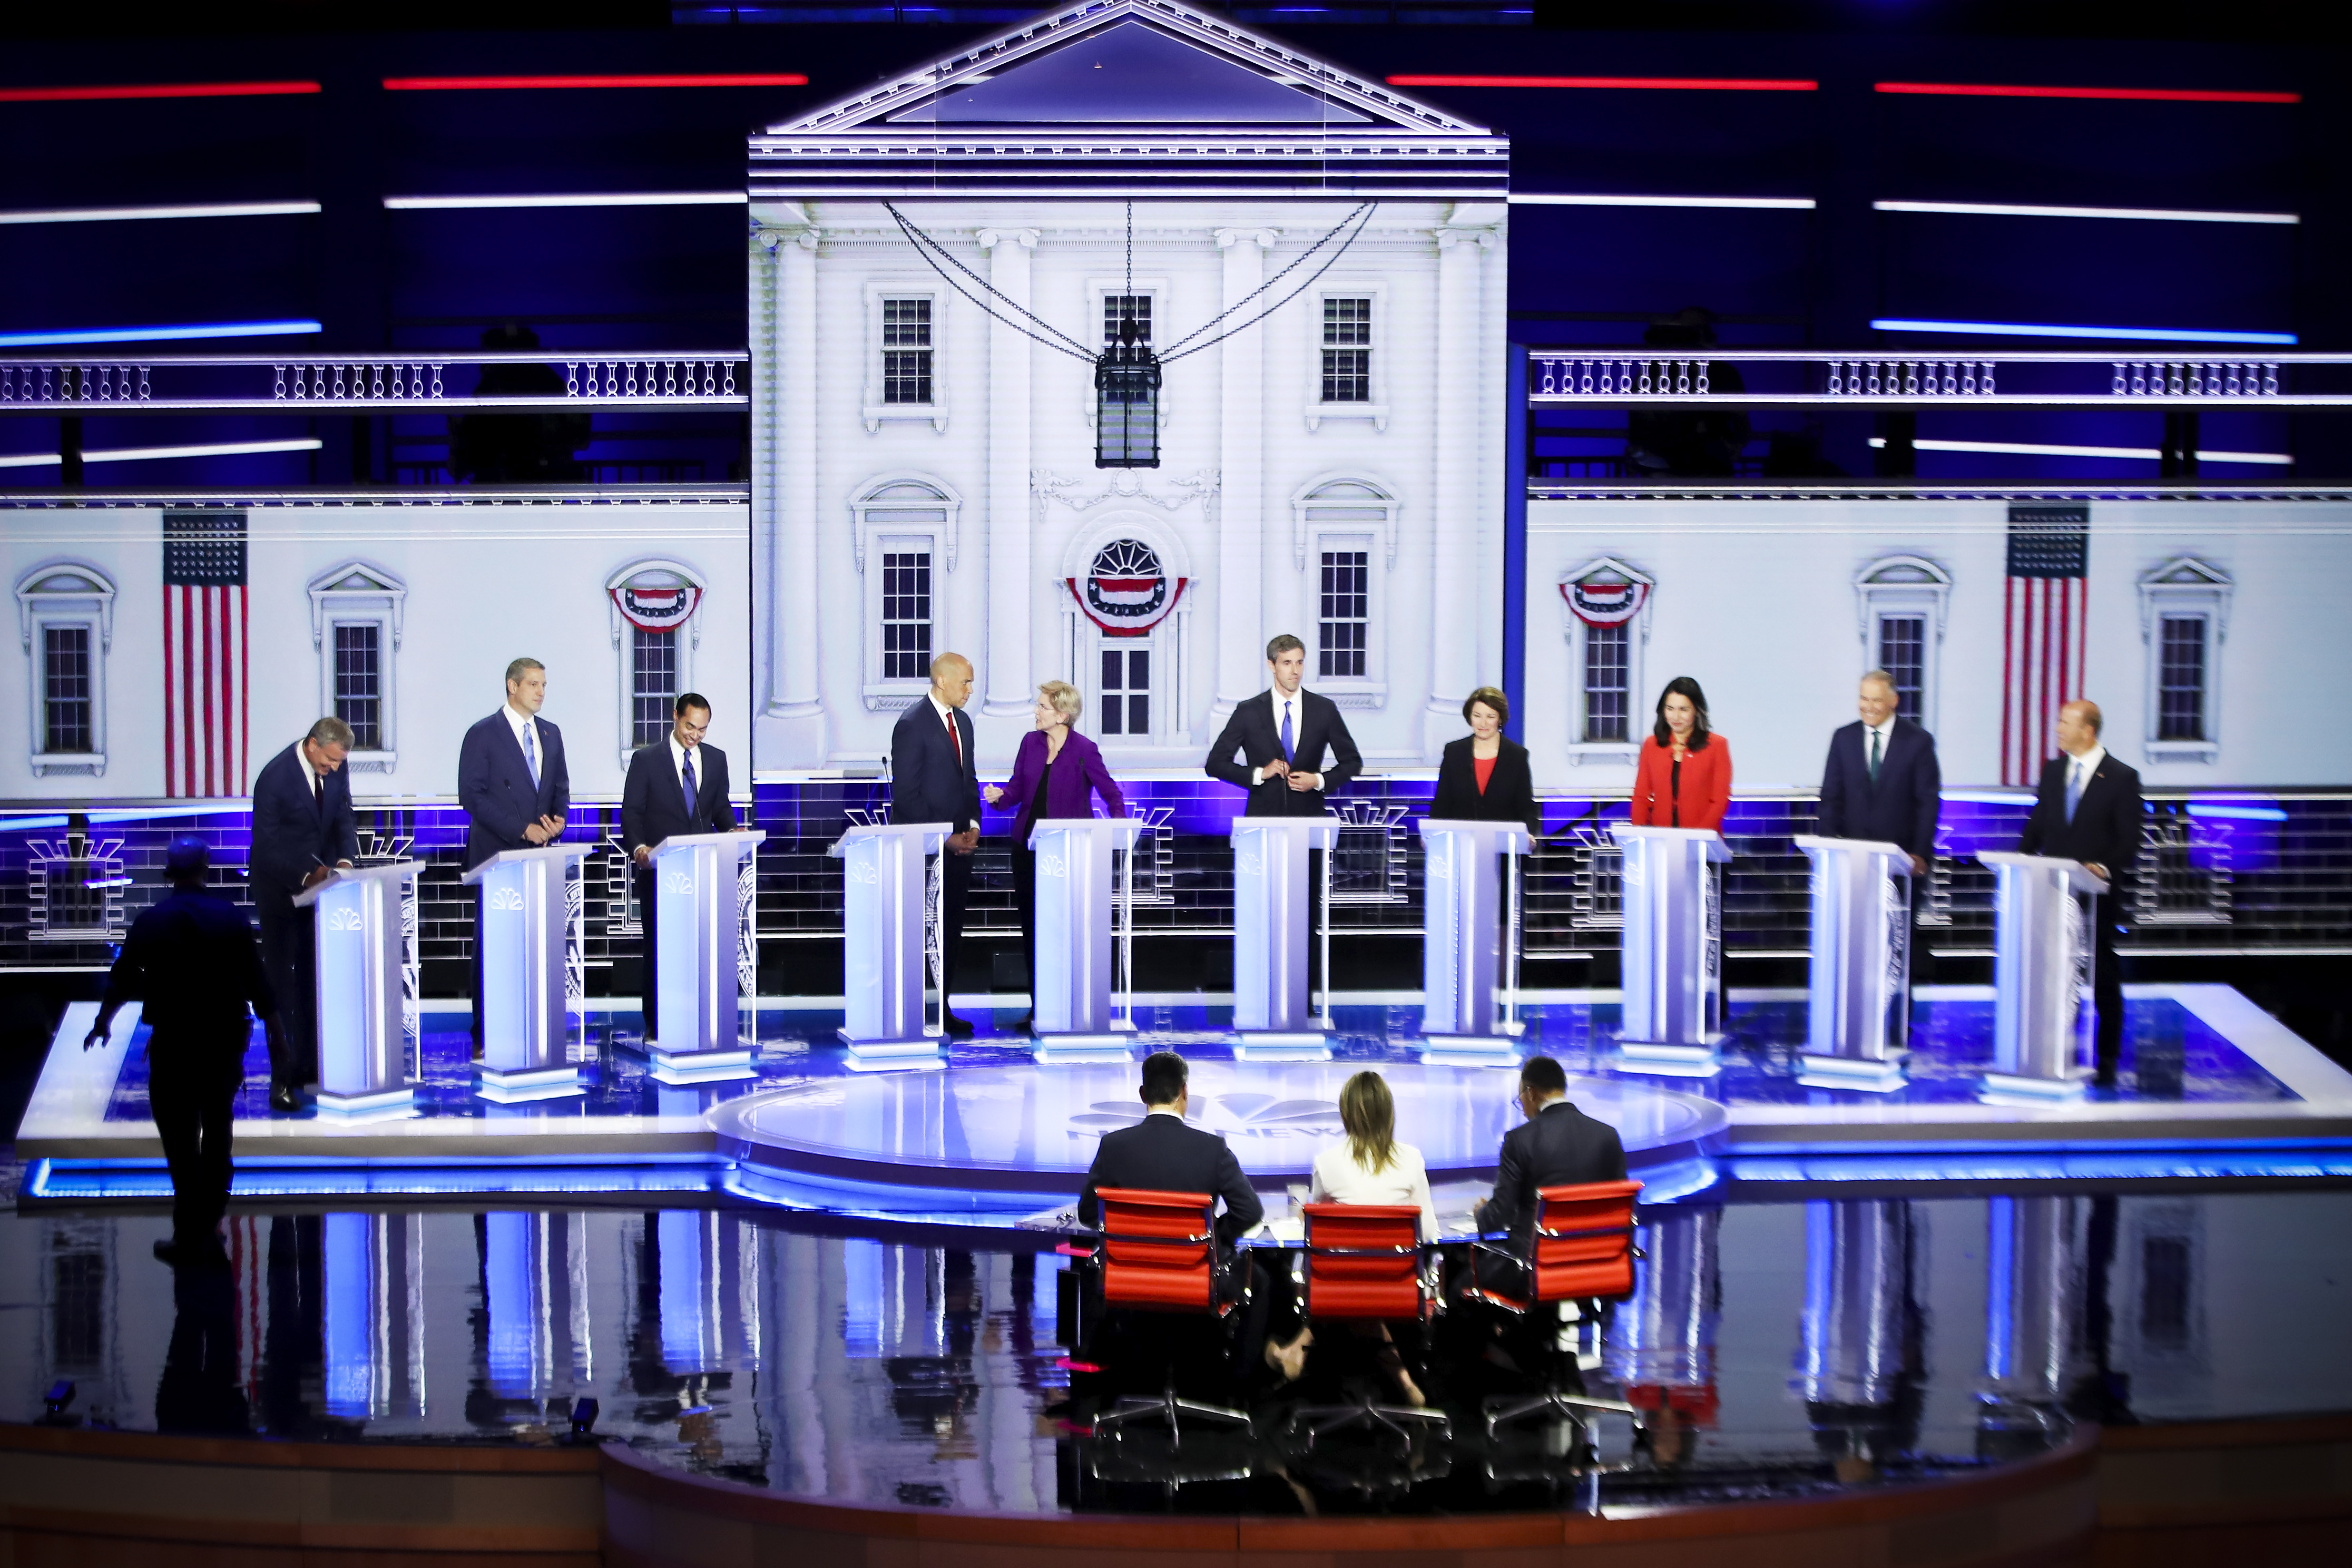 The first night of the Democratic presidential debate on June 26, 2019 in Miami, Florida.